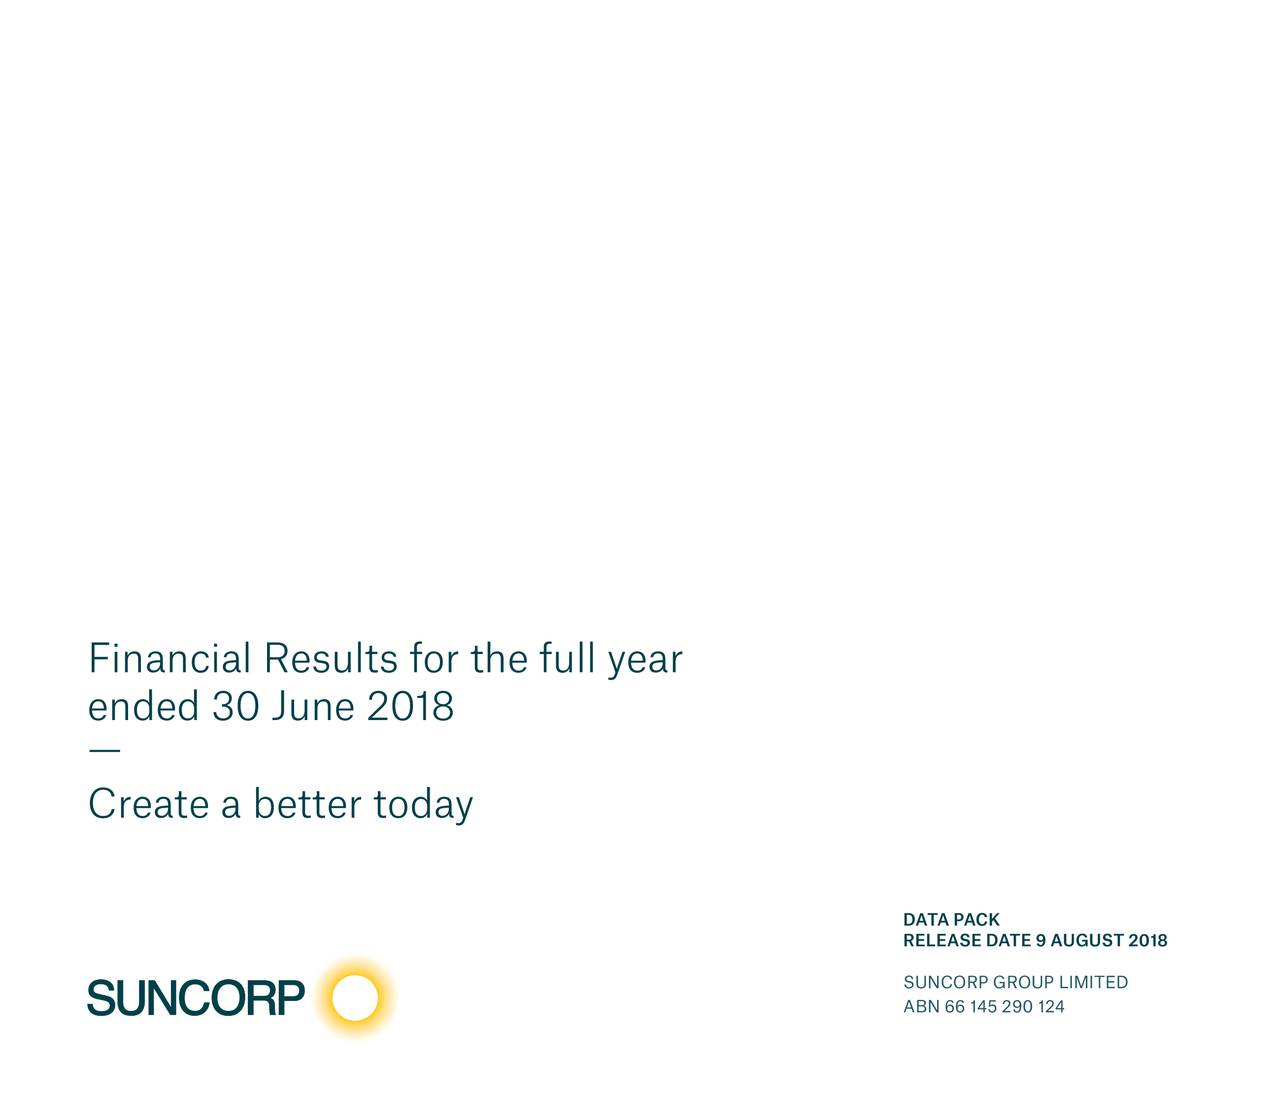 Financial Results for the full year